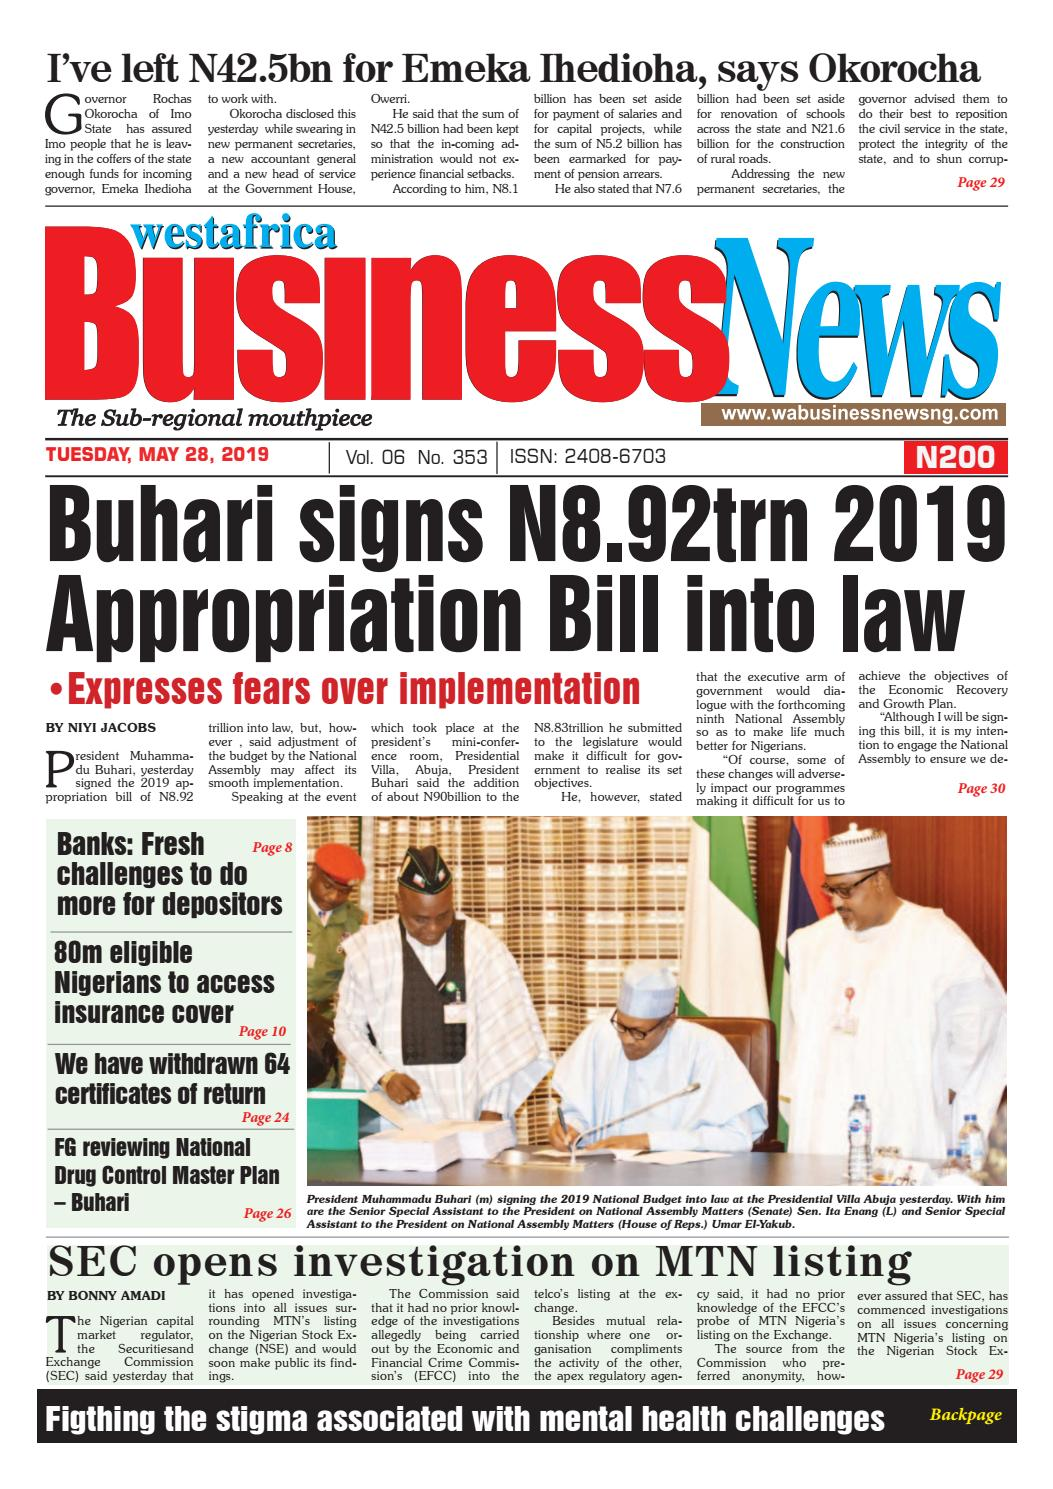 Westafrica BusinessNews Tuesday, May 28, 2019 by